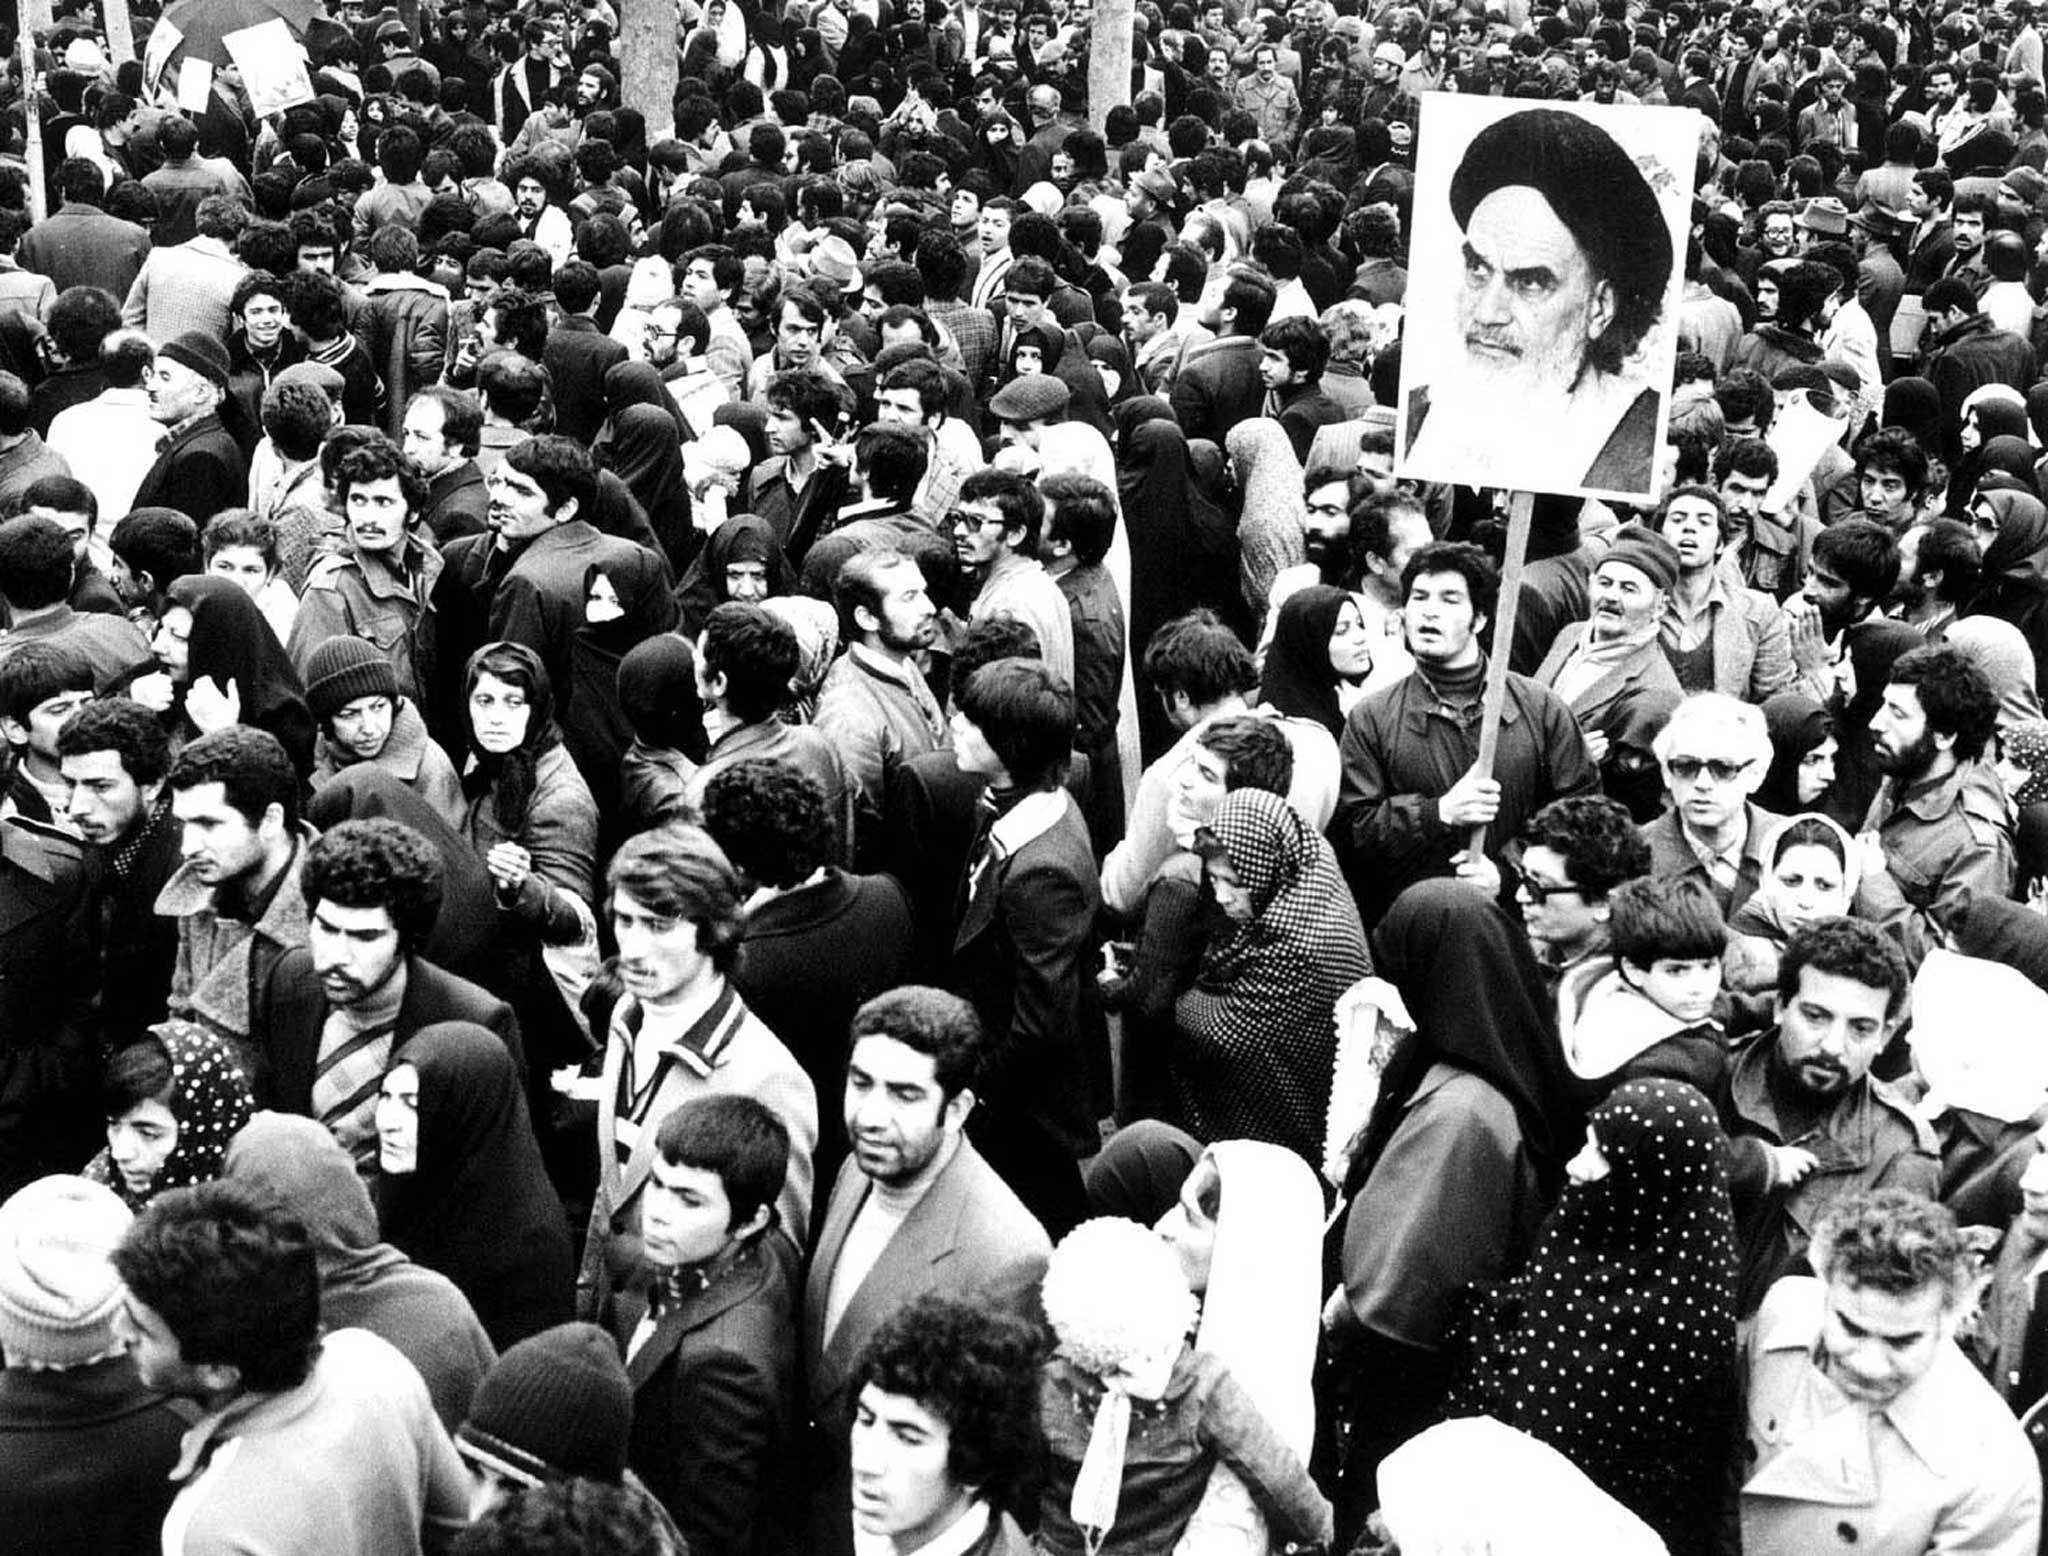 IRANIANS HOLD PICTURE OF KHOMEINI DURING THE REVOLUTION.